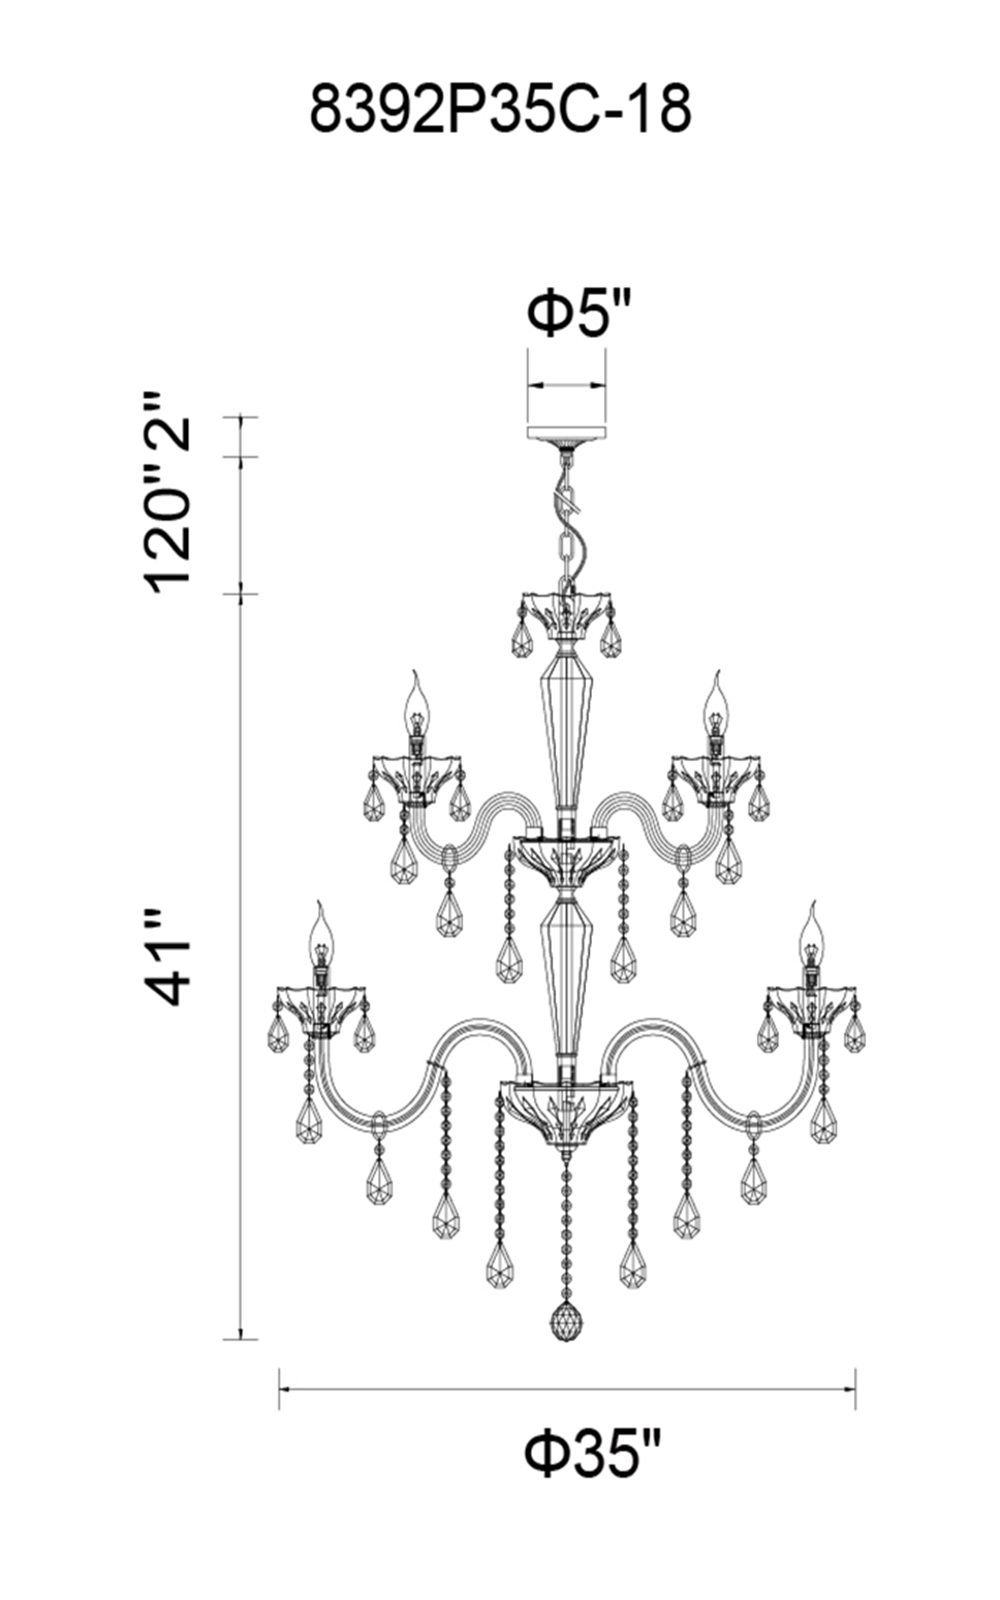 CWI Lighting Harvard 18 Light Up Chandelier With Chrome Finish Model: 8392P35C-18 Line Drawing